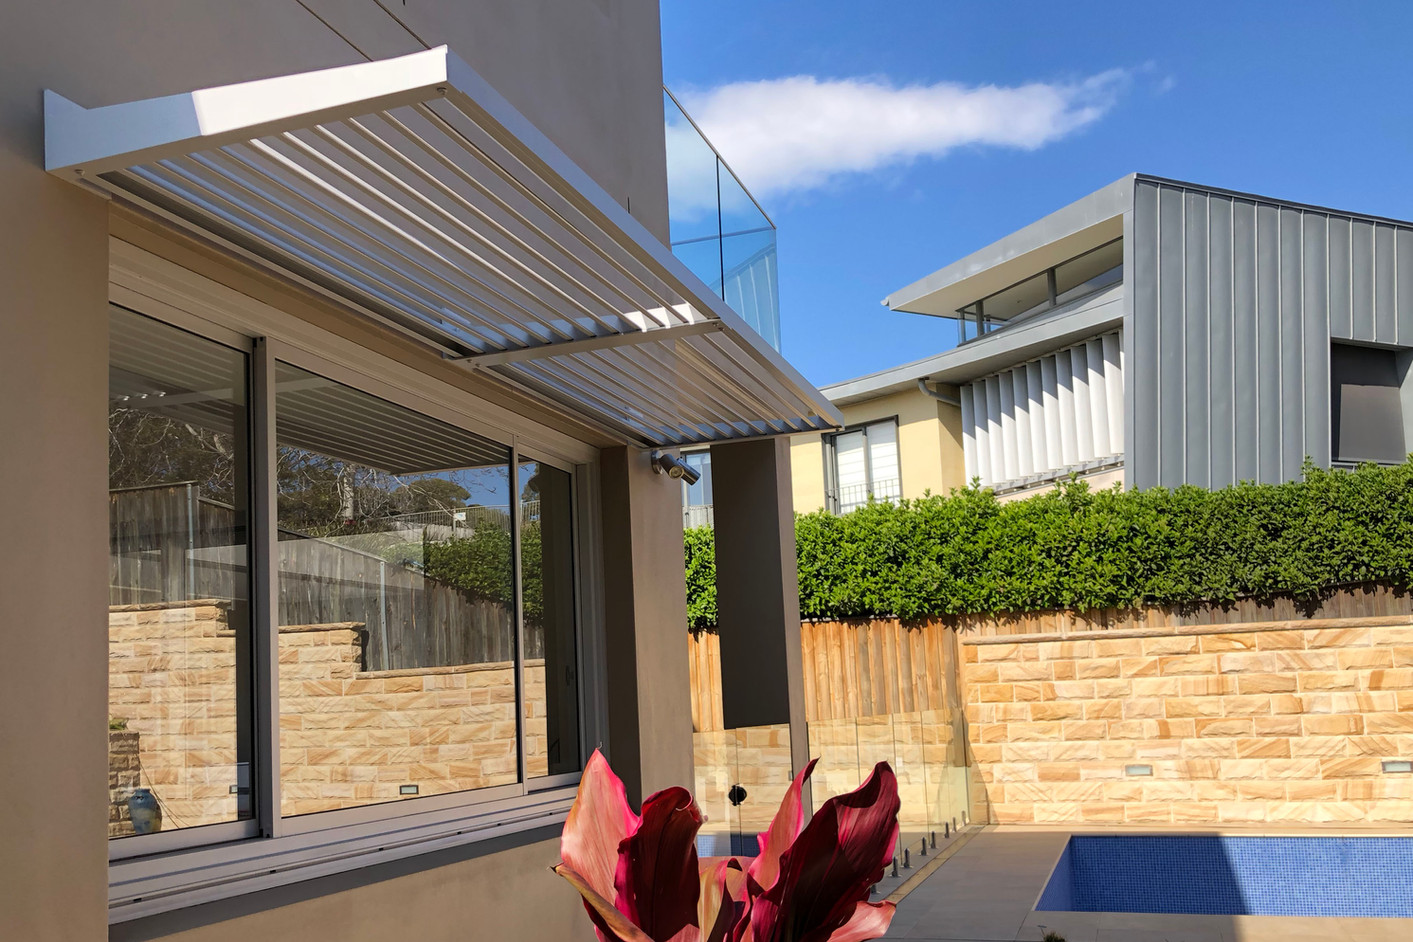 BASIX awning avalon. Fixed louvre awning over window. Aluminium privacy screen Colorbond screen.